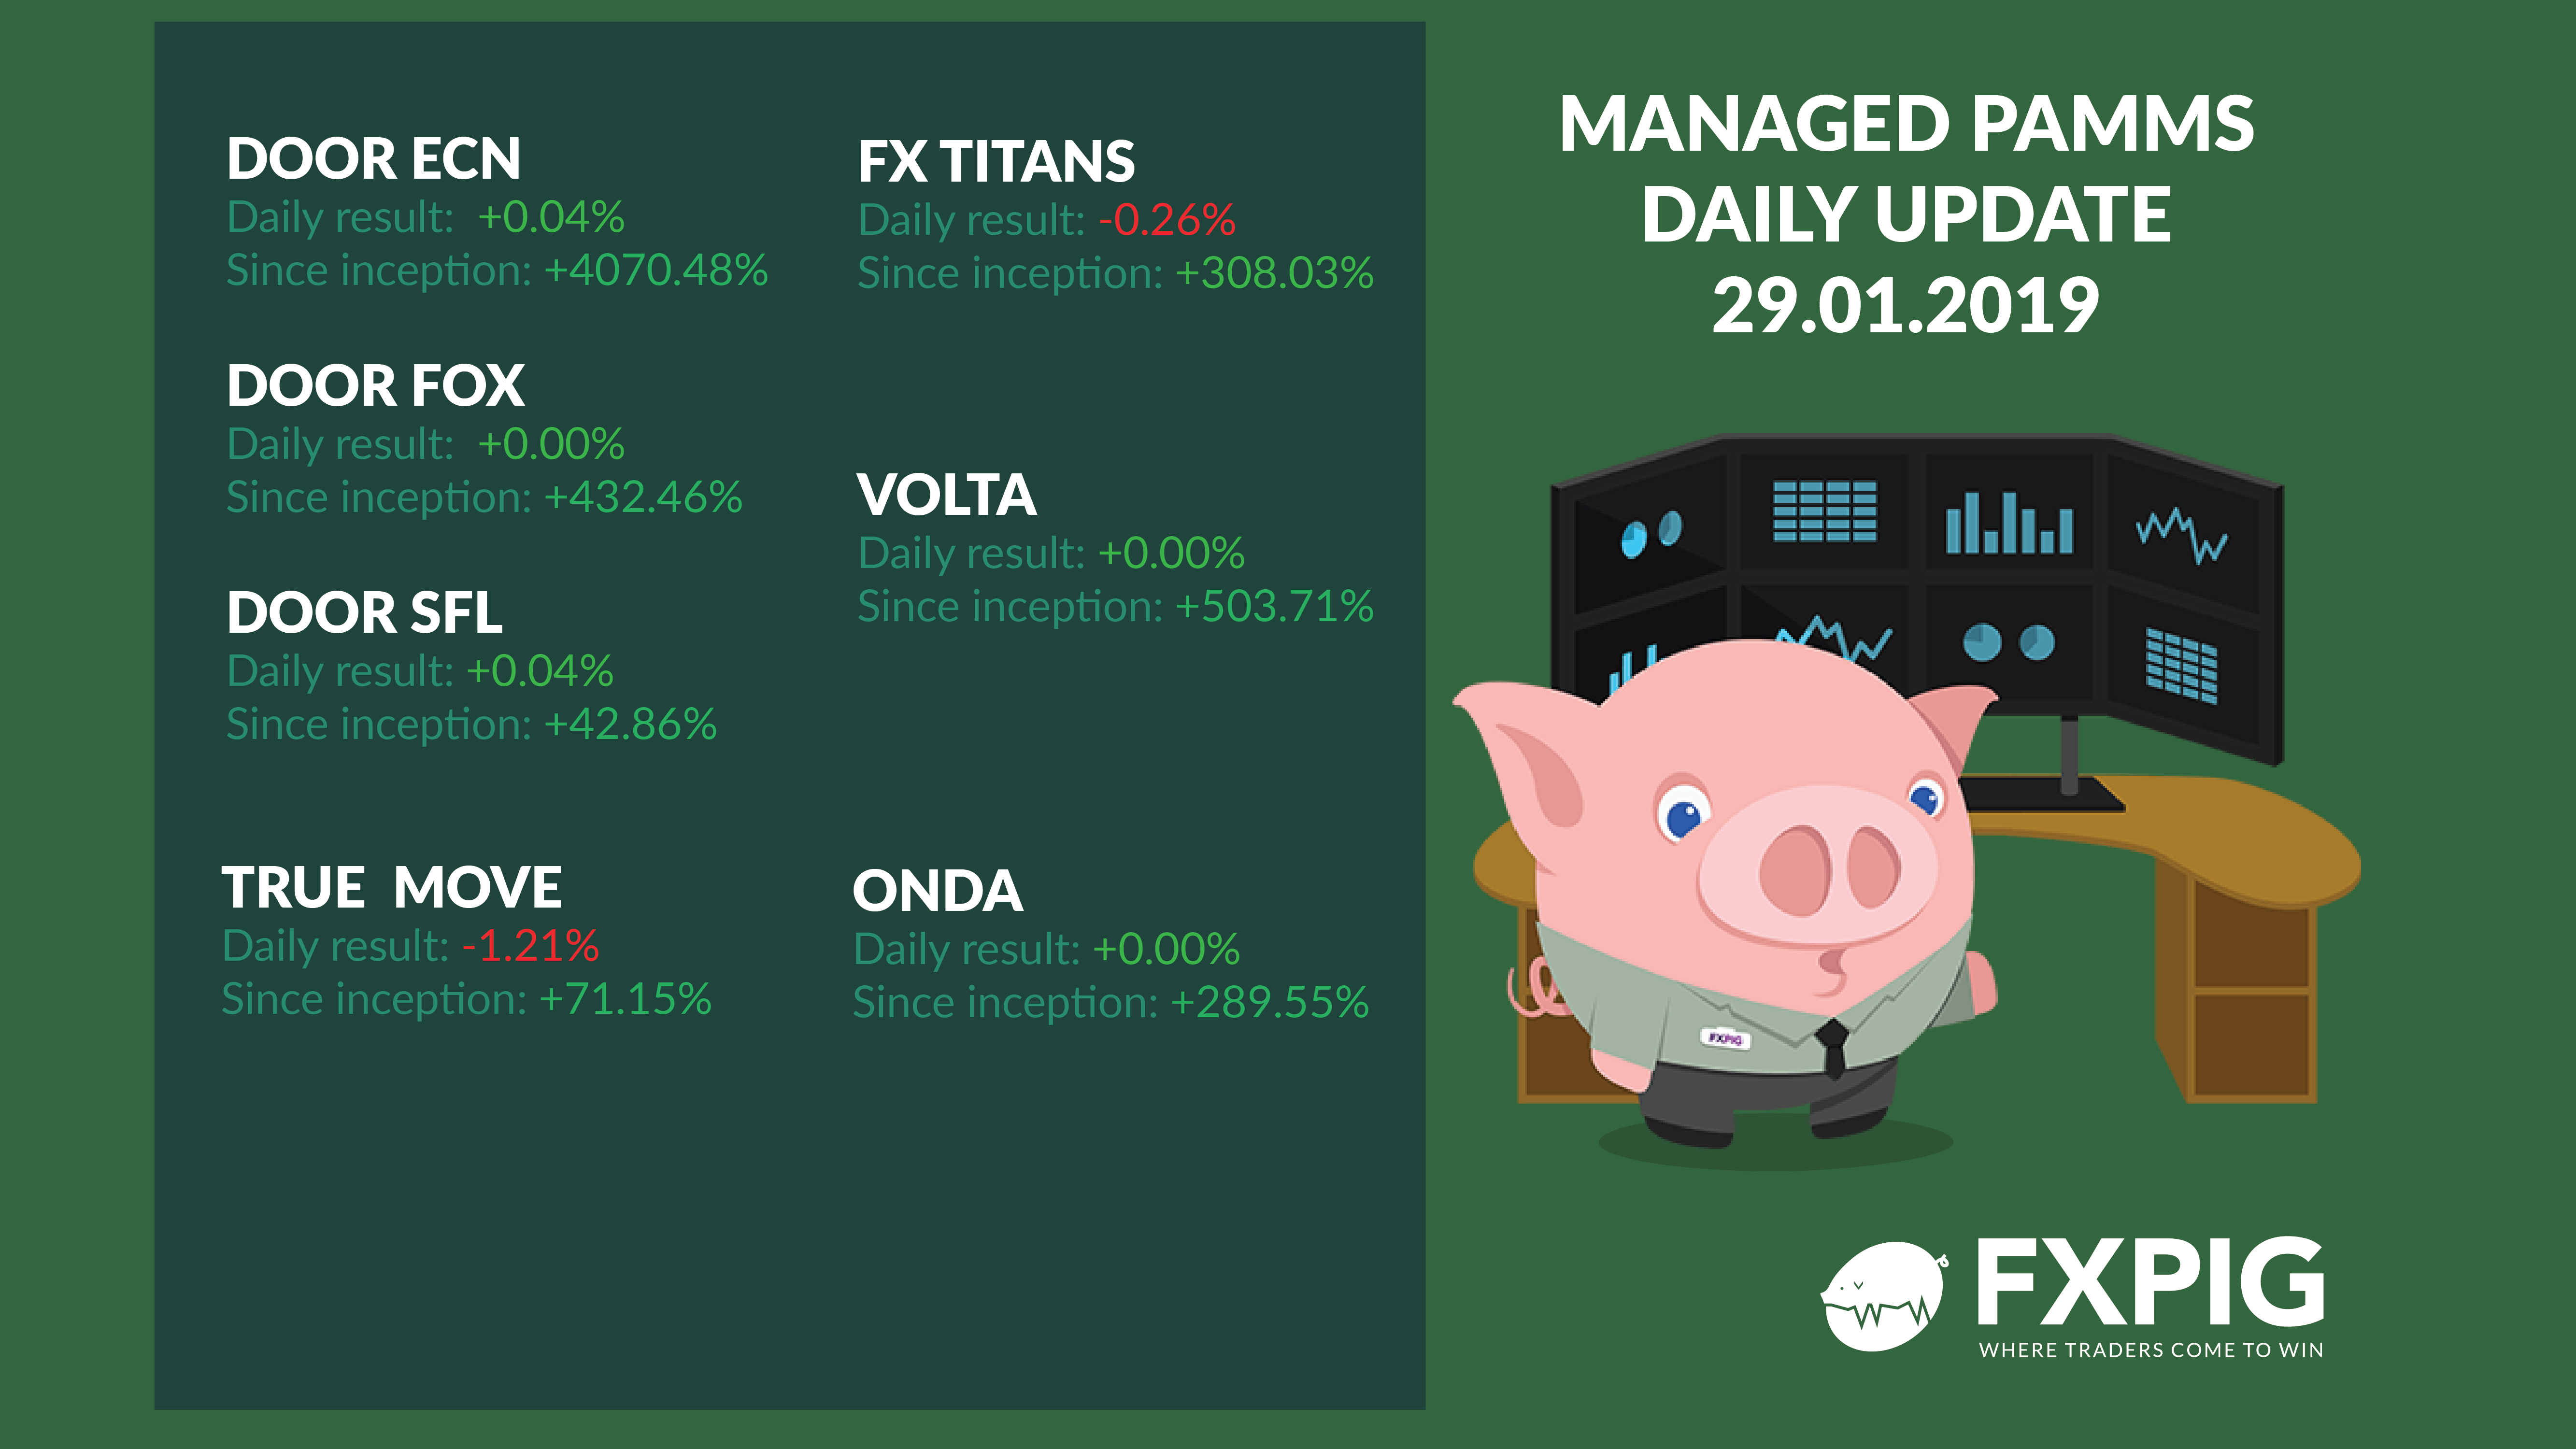 Forex_Trading_Fx_Trader_FXPIG_PAMMS_MANAGED_ACCOUNTS_PROFIT_29.01.2019